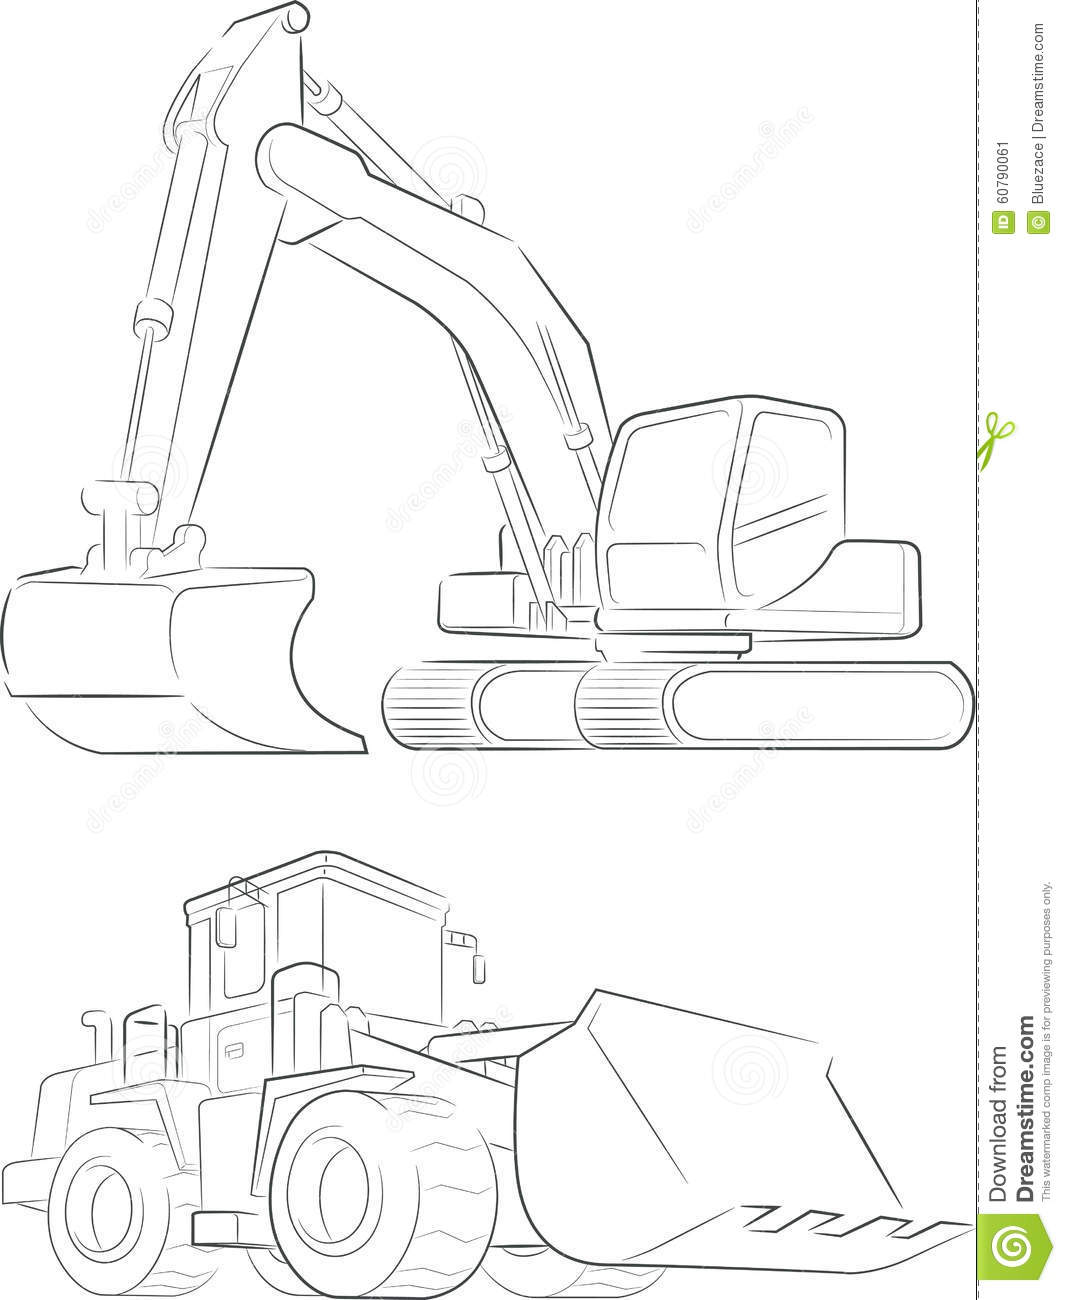 Bulldozer Amp Excavator Vector Line Art Stock Vector